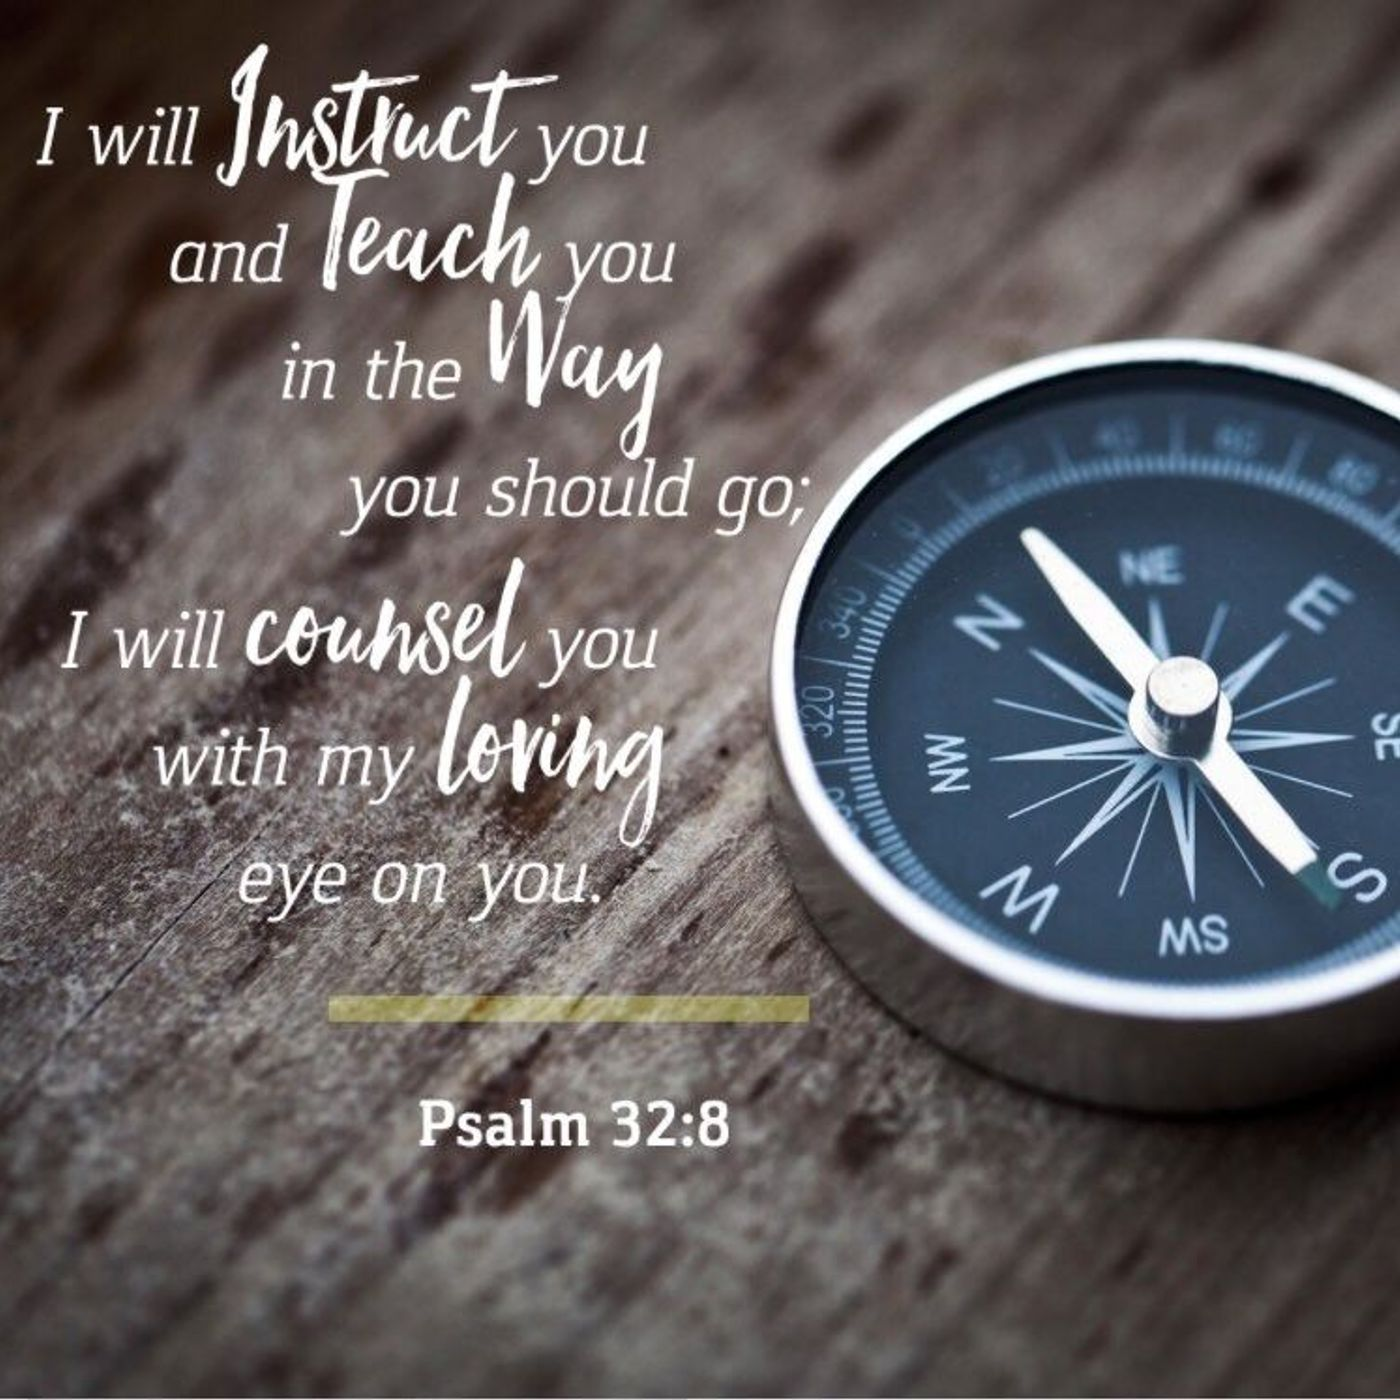 Who is Speaking in Psalm 32:8